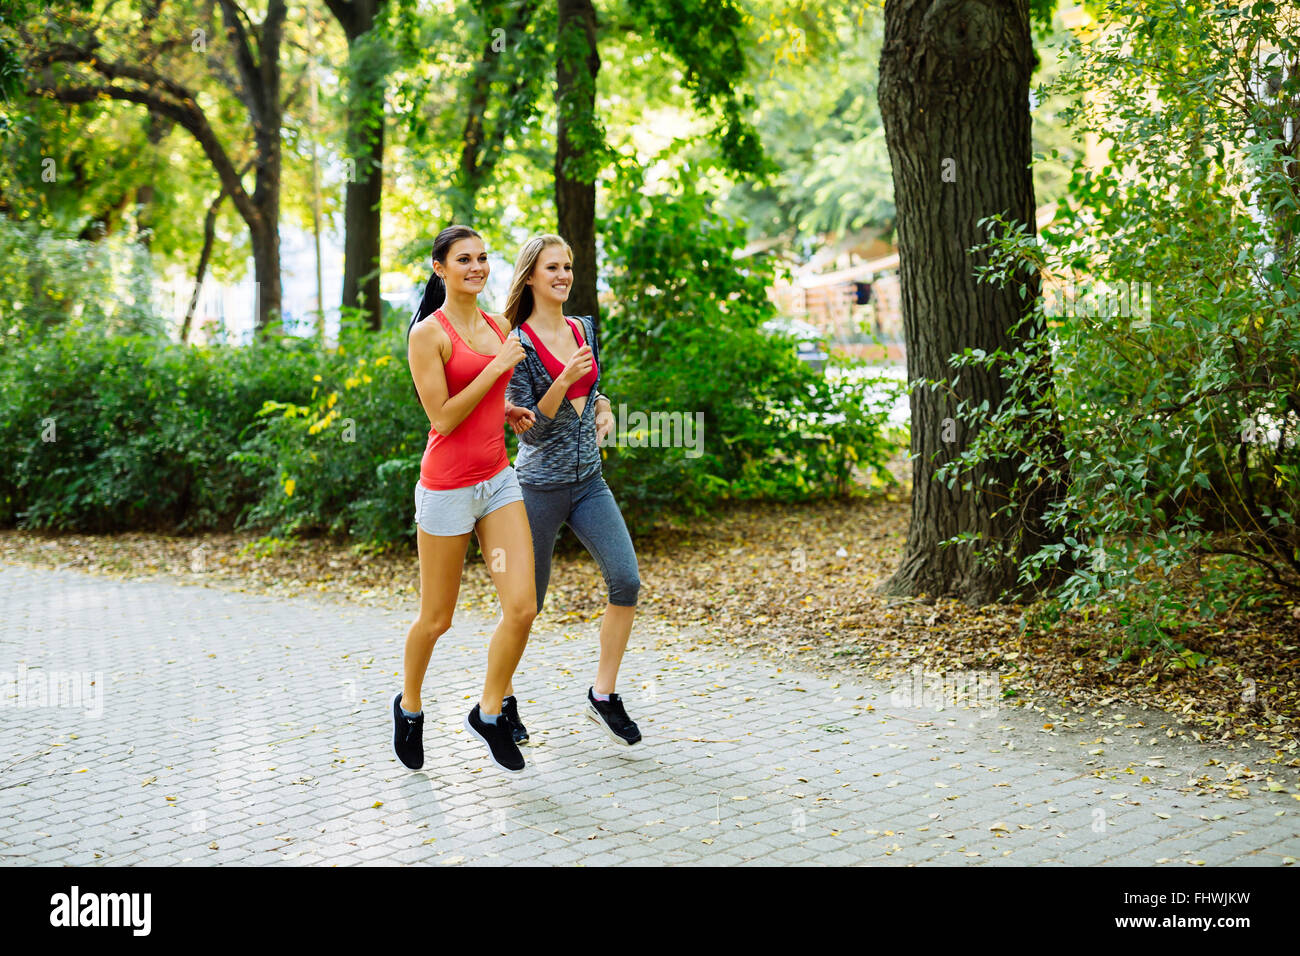 Two young women jogging in nature in pursuit of a perfect body figure - Stock Image